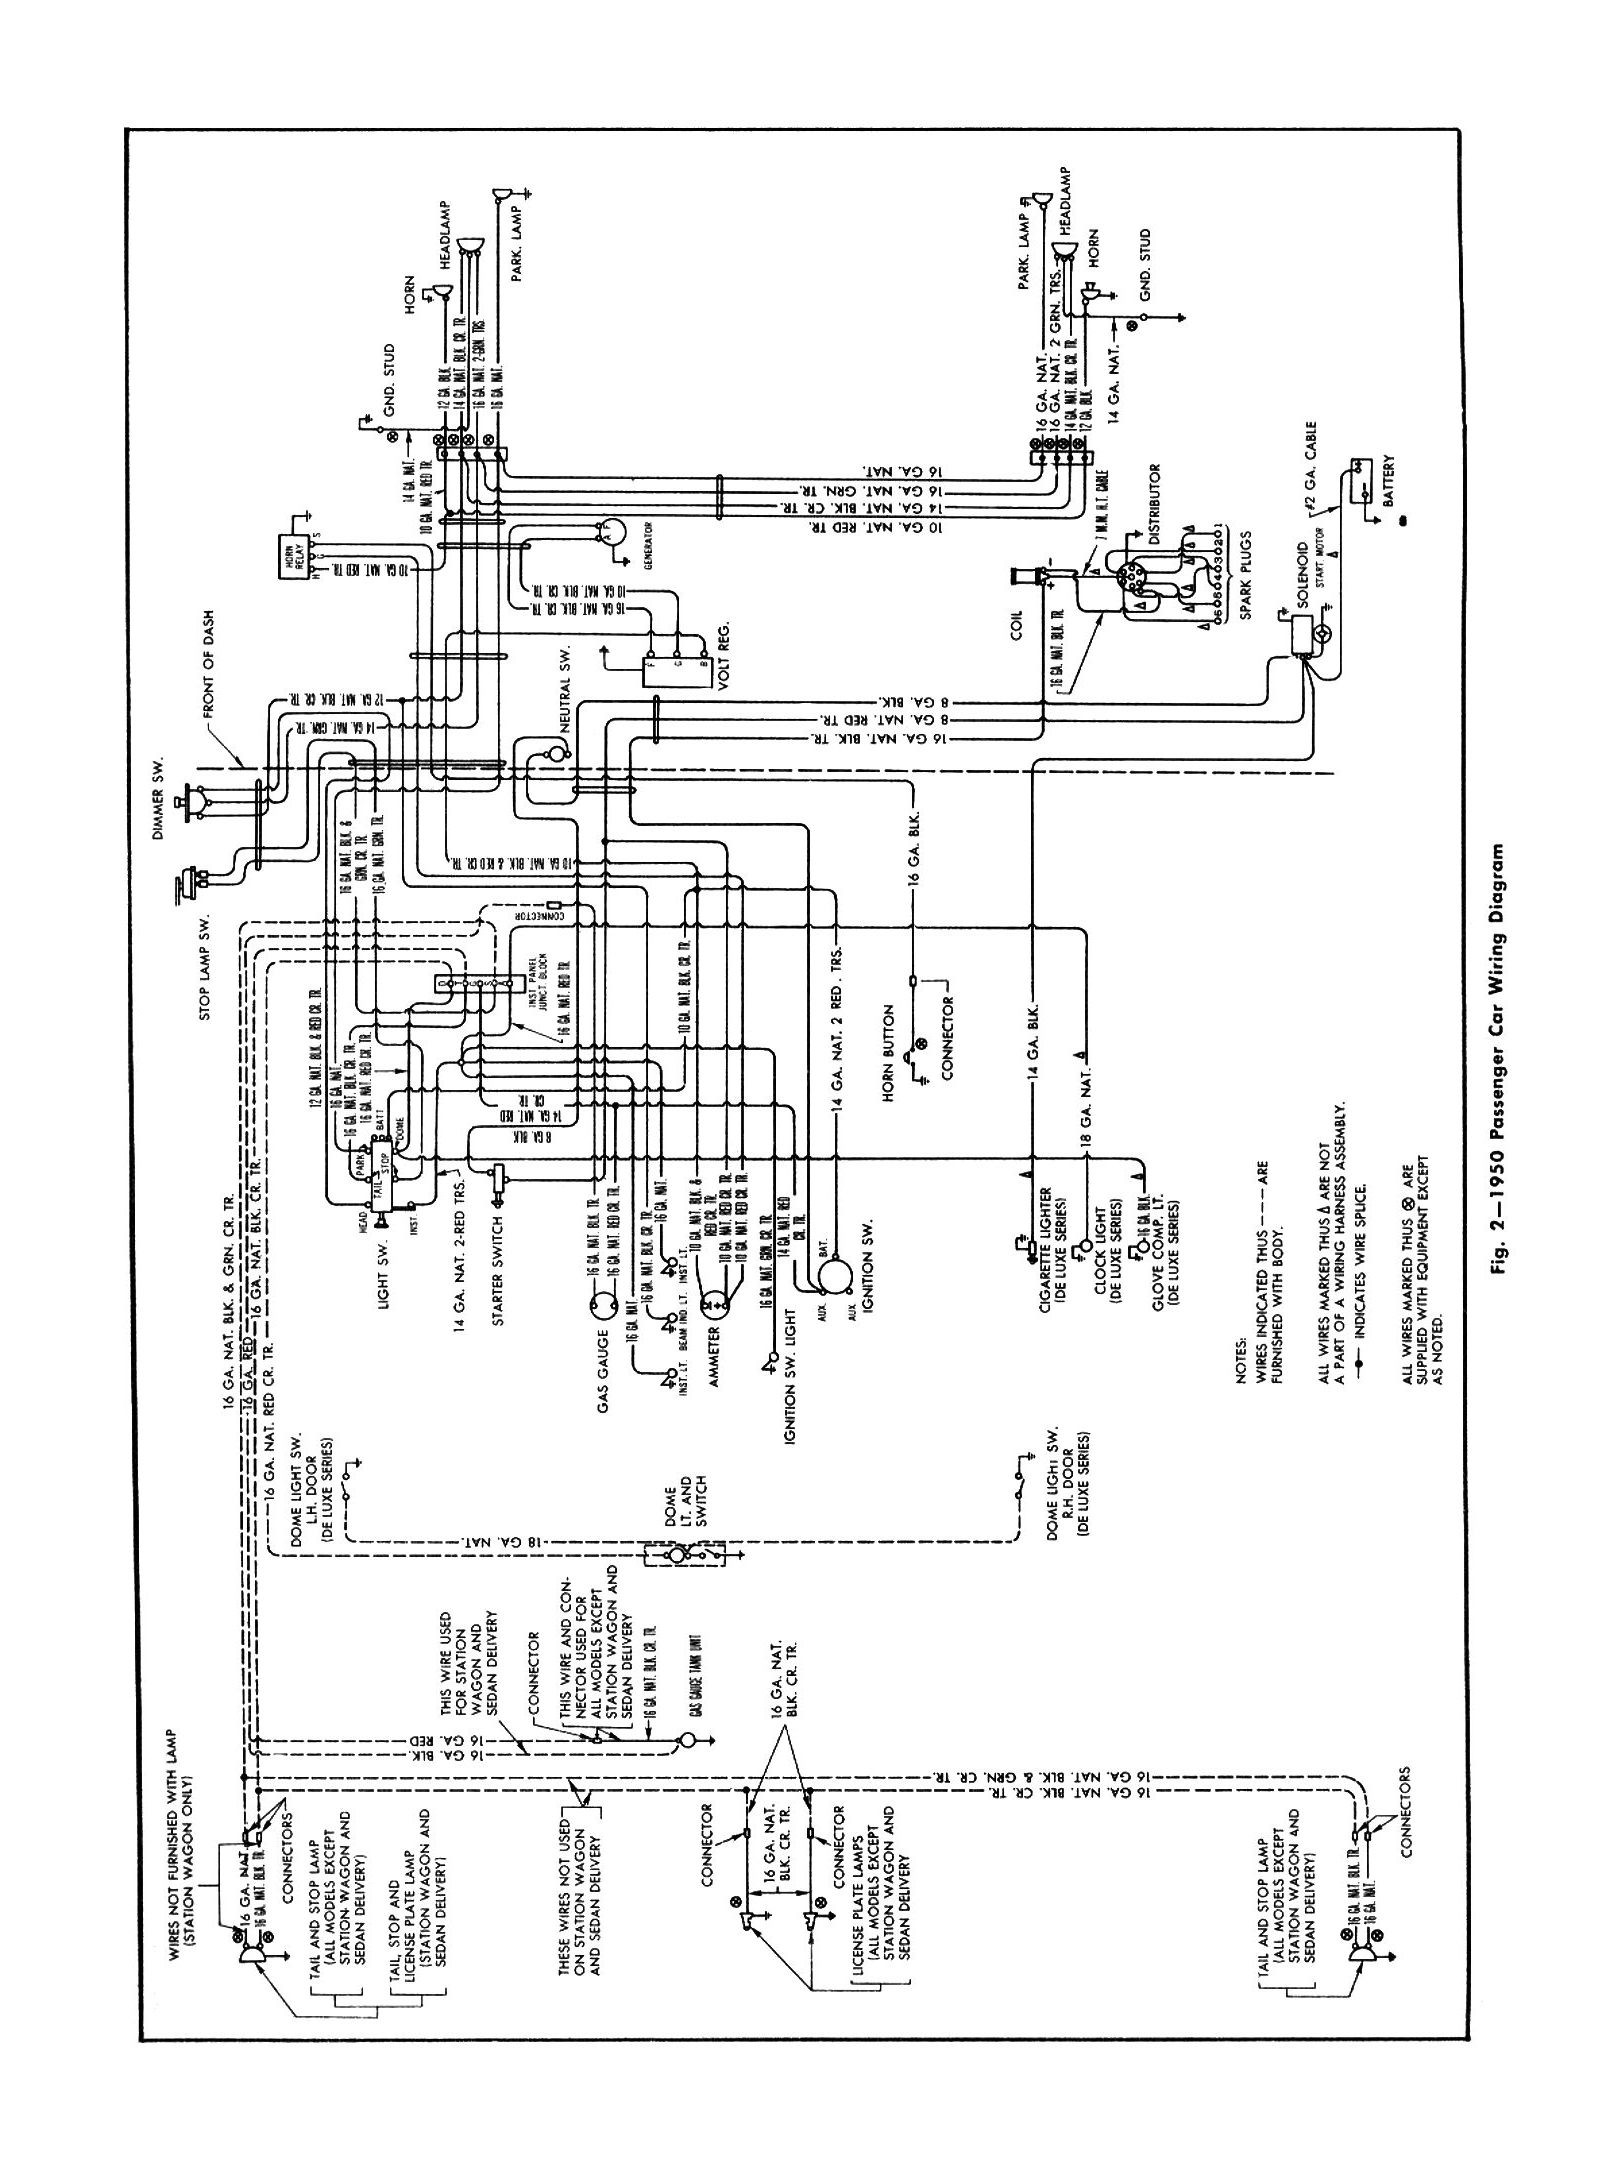 50car electrical diagrams chevy only page 2 truck forum readingrat net  at bayanpartner.co